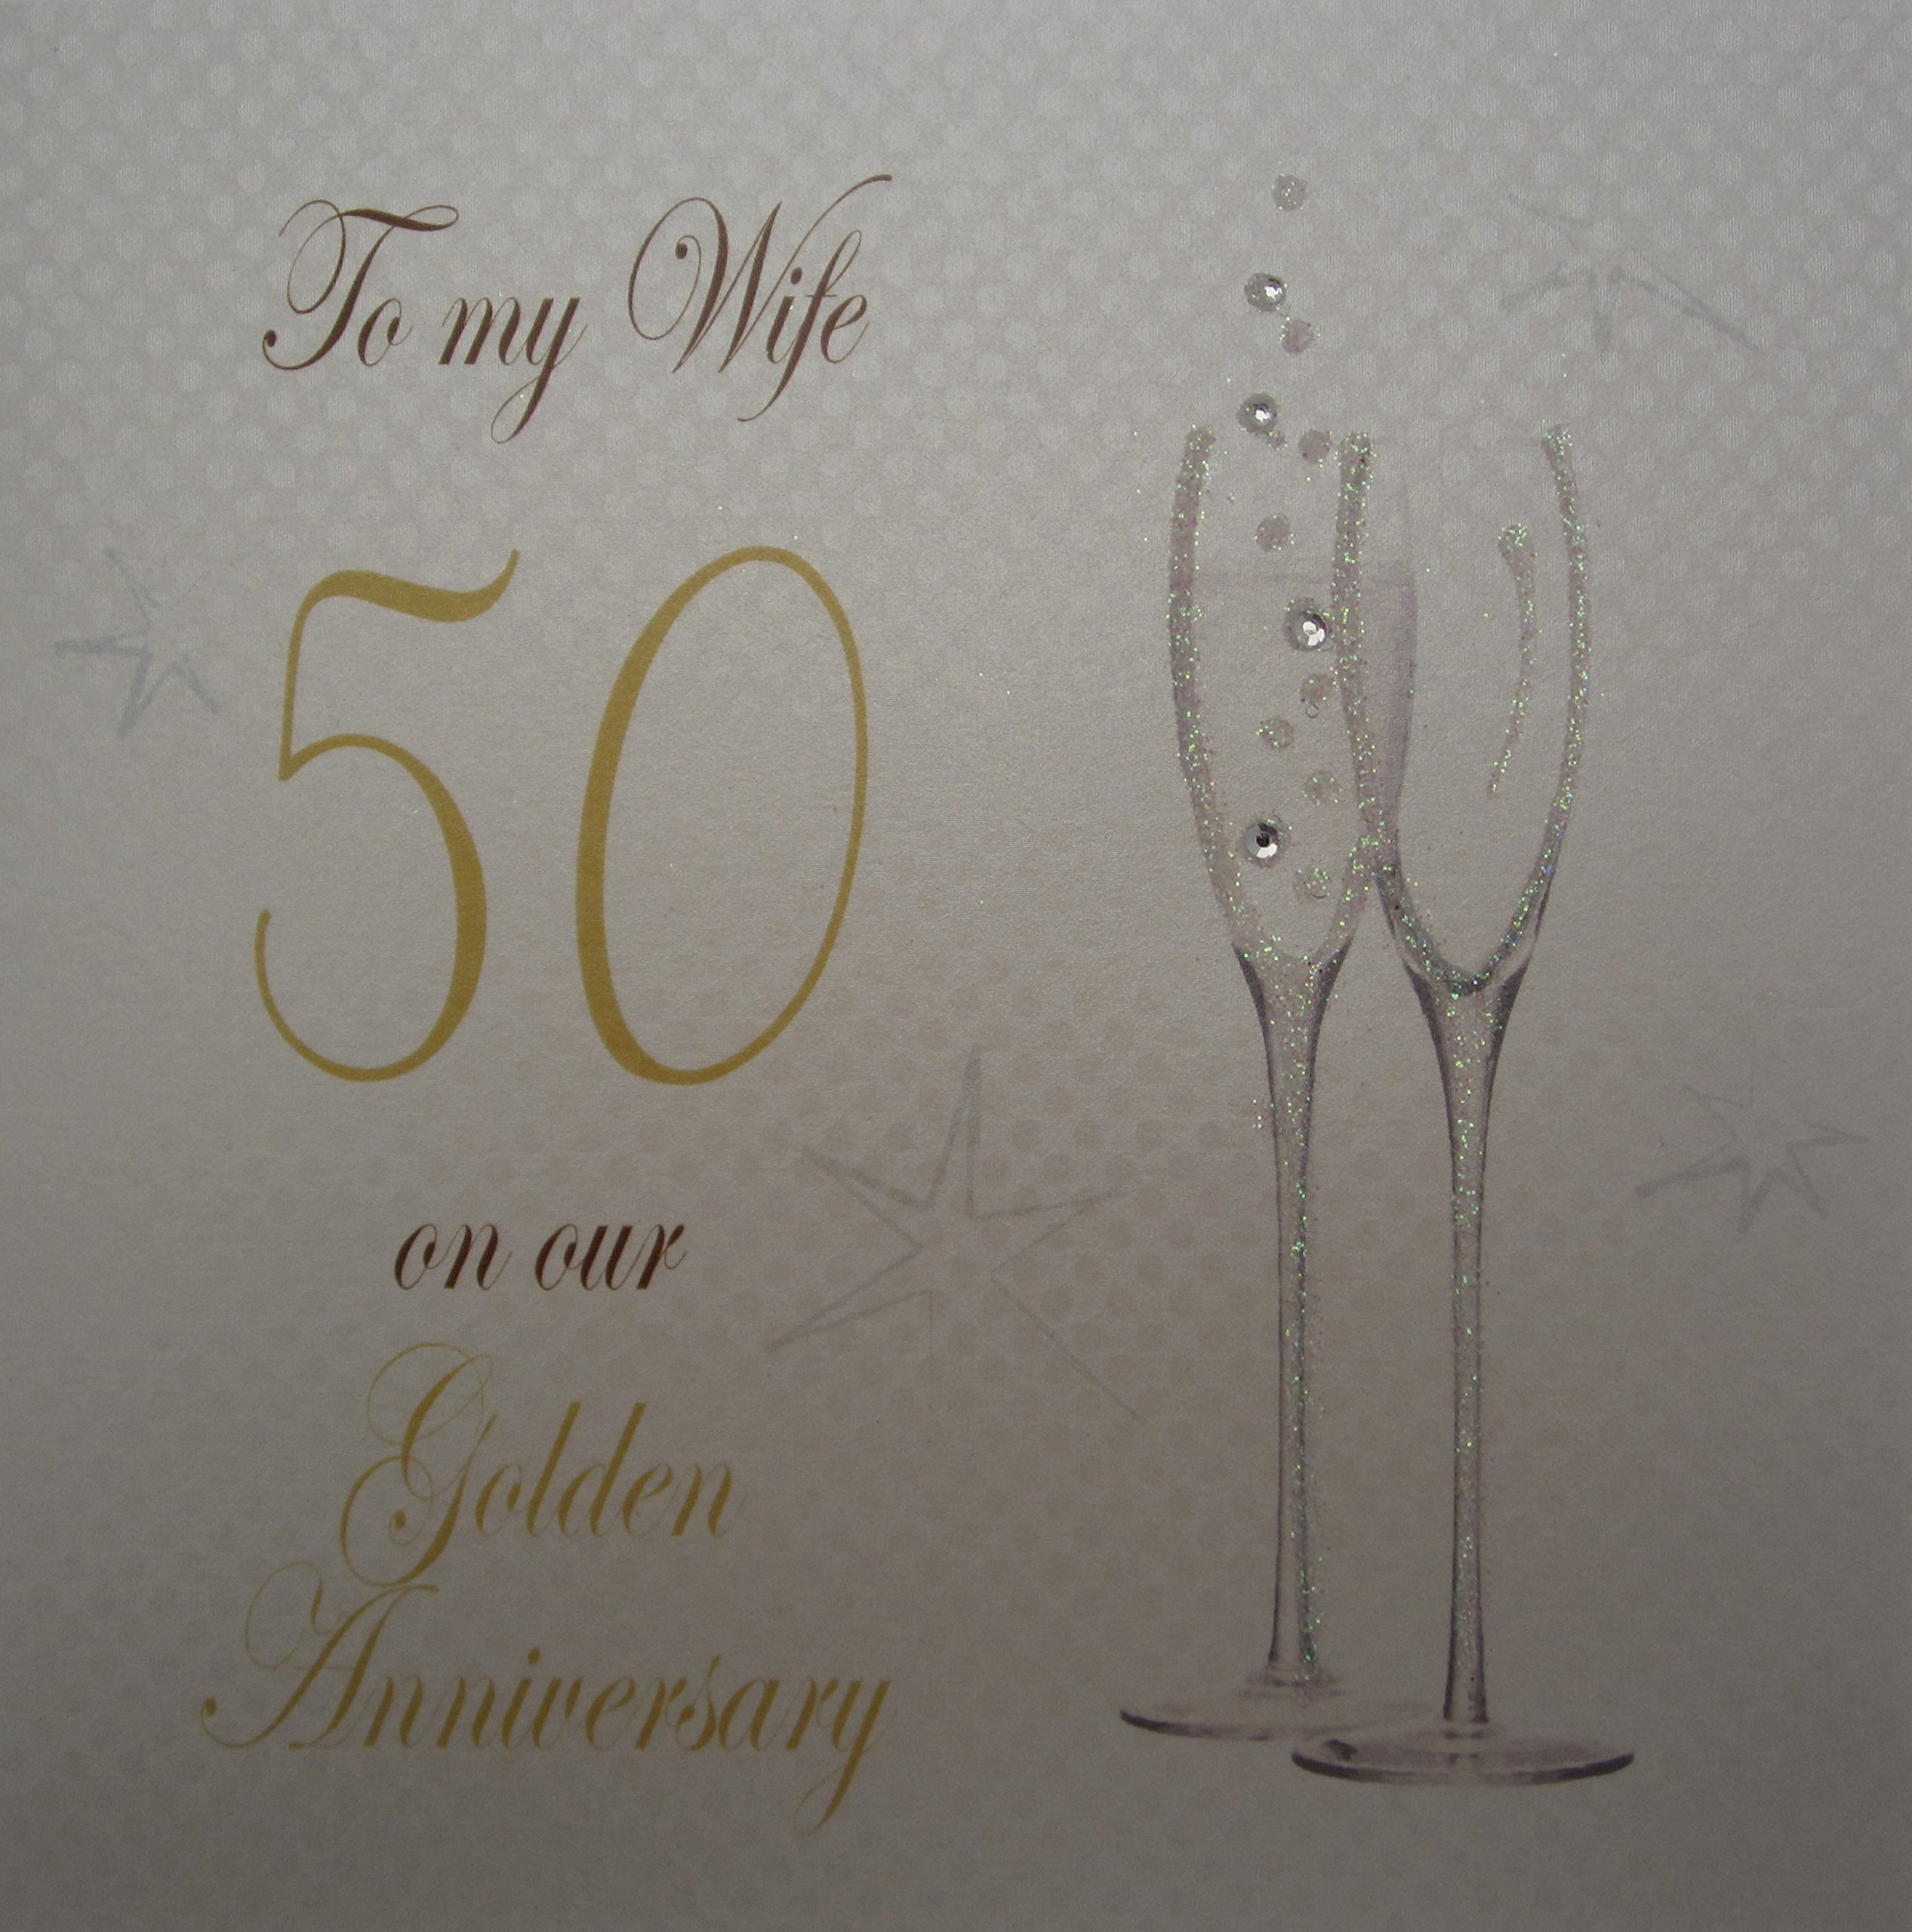 White Cotton Cards P50W Champagne Flutes''To My Wife On Our Golden Anniversary'' Handmade 50th Anniversary Card, White